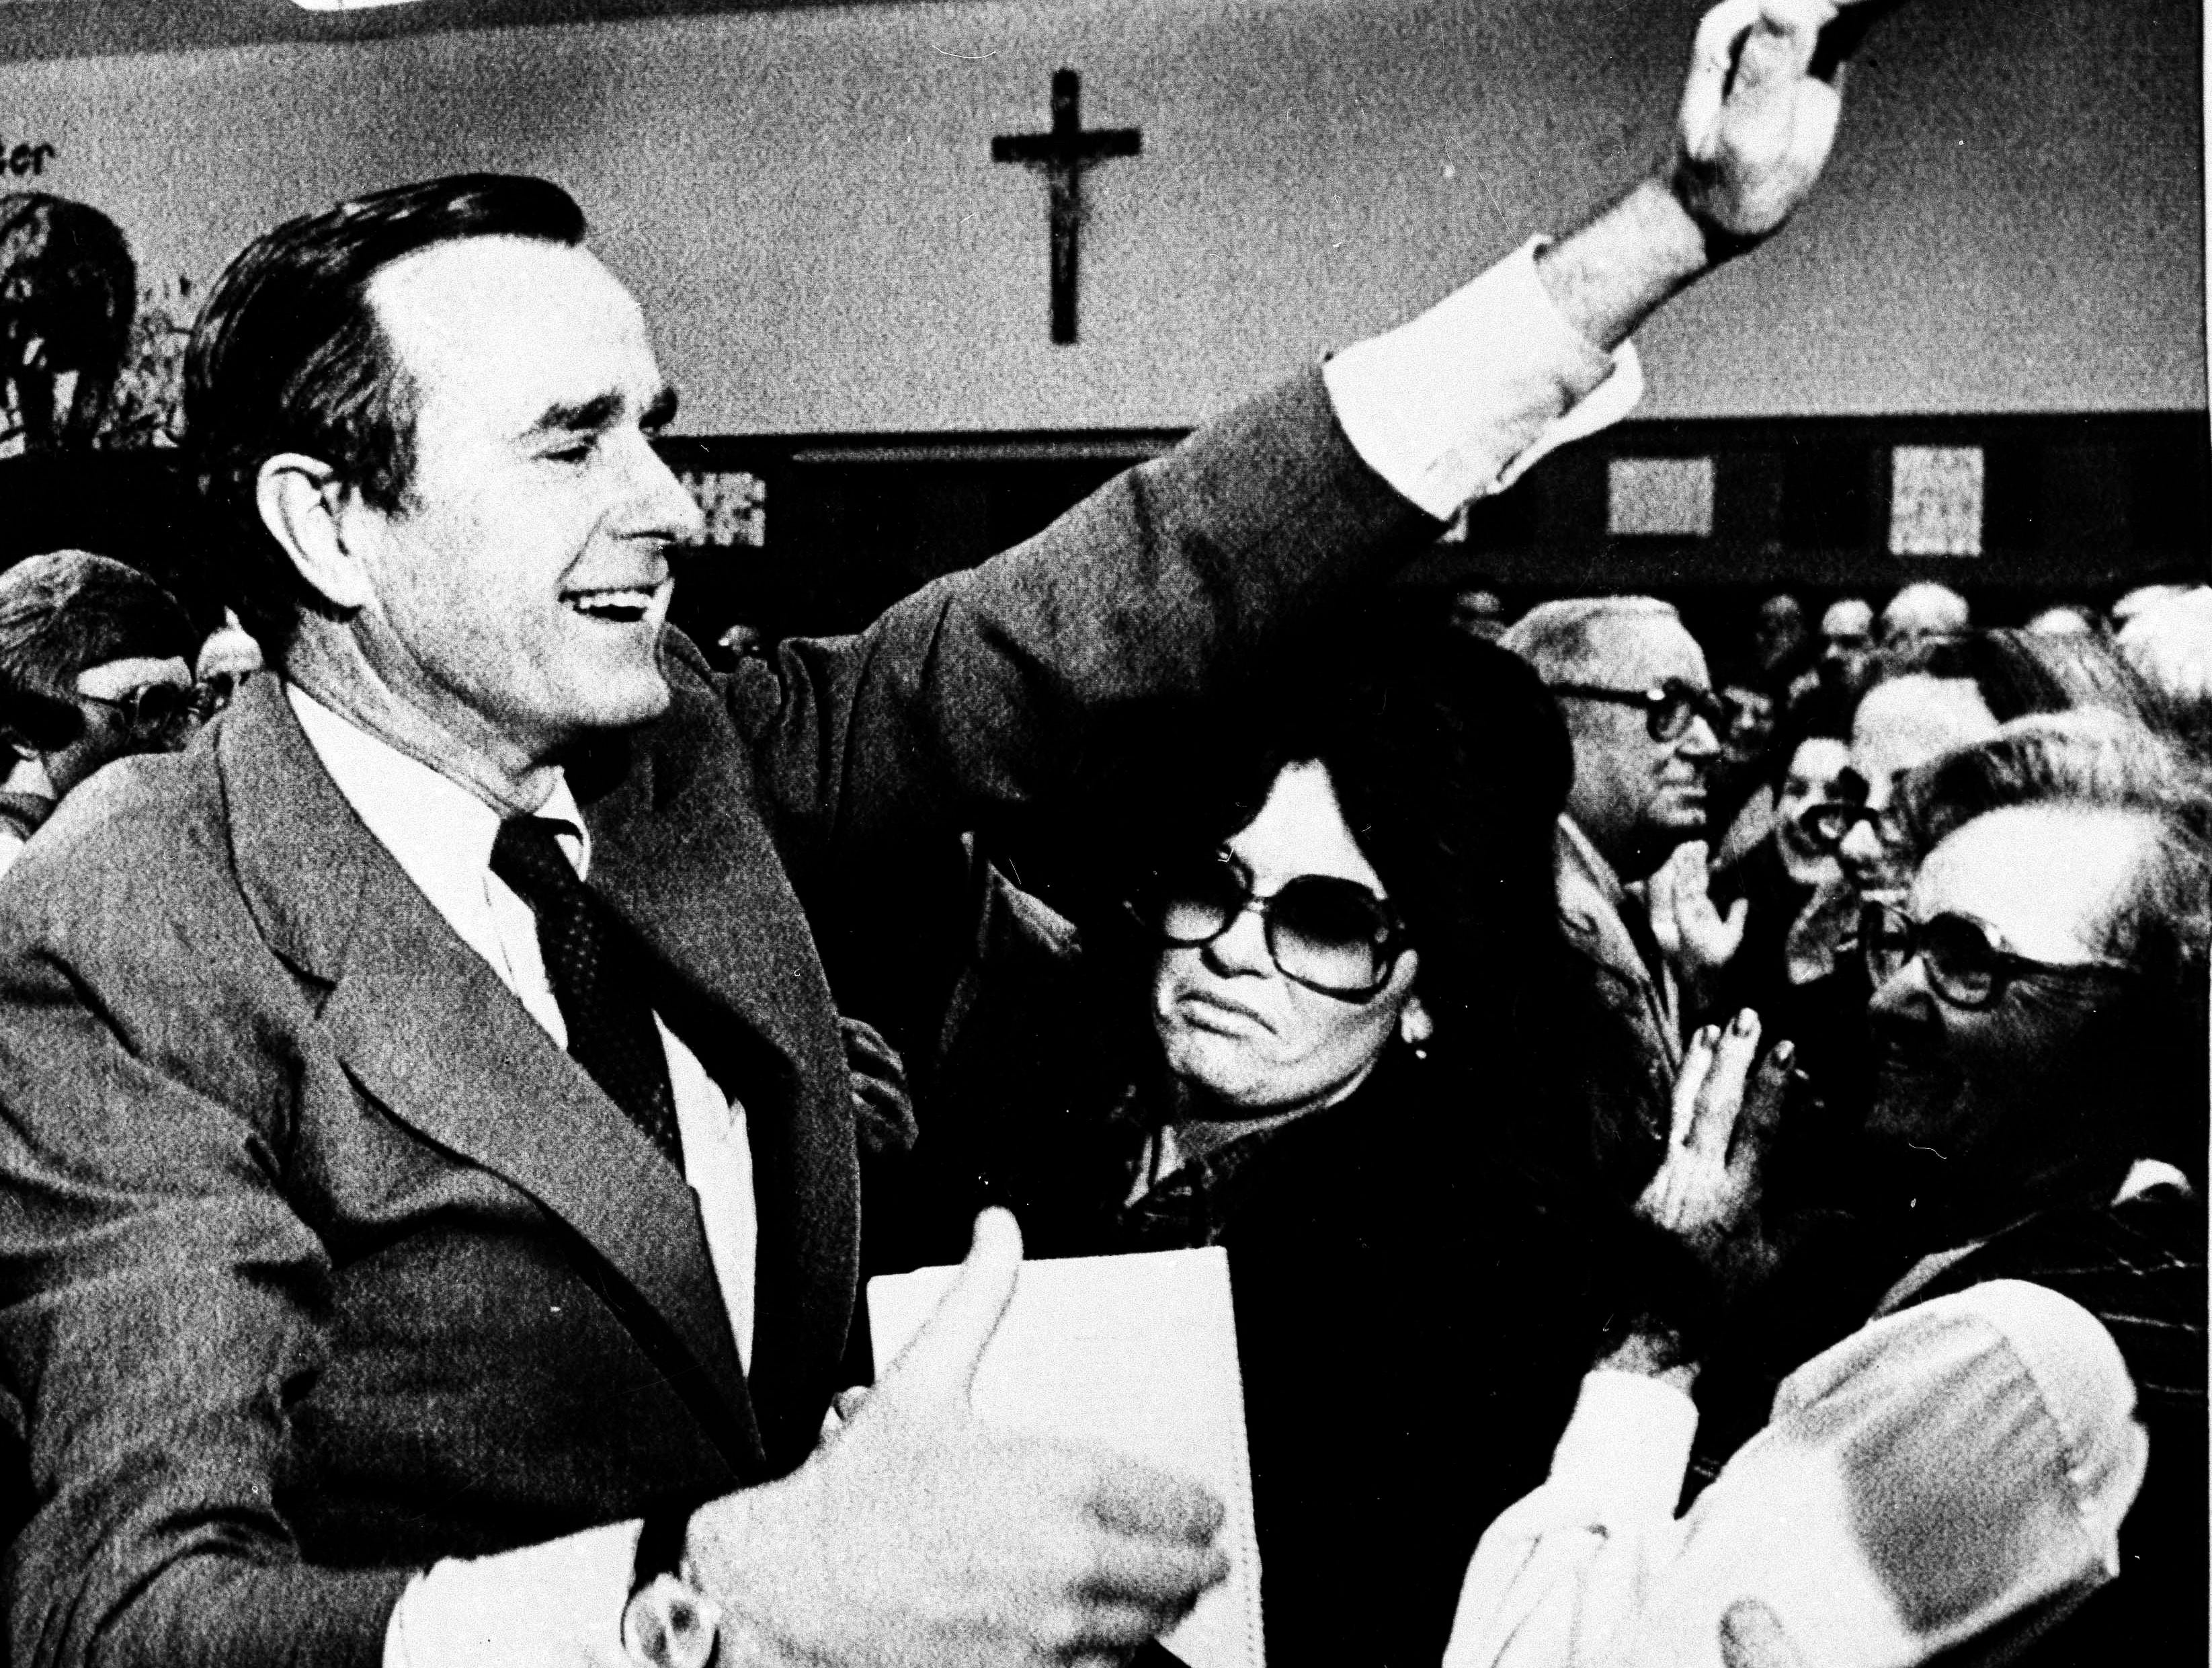 George Bush waves to acknowledge the applause of Iowa voters in the St. Augustin's precinct of Des Moines after he won a majority of votes there, Jan. 21, 1980. Bush toured several precincts in his bid for the Republican presidential nomination. (AP Photo/Jim Mone)